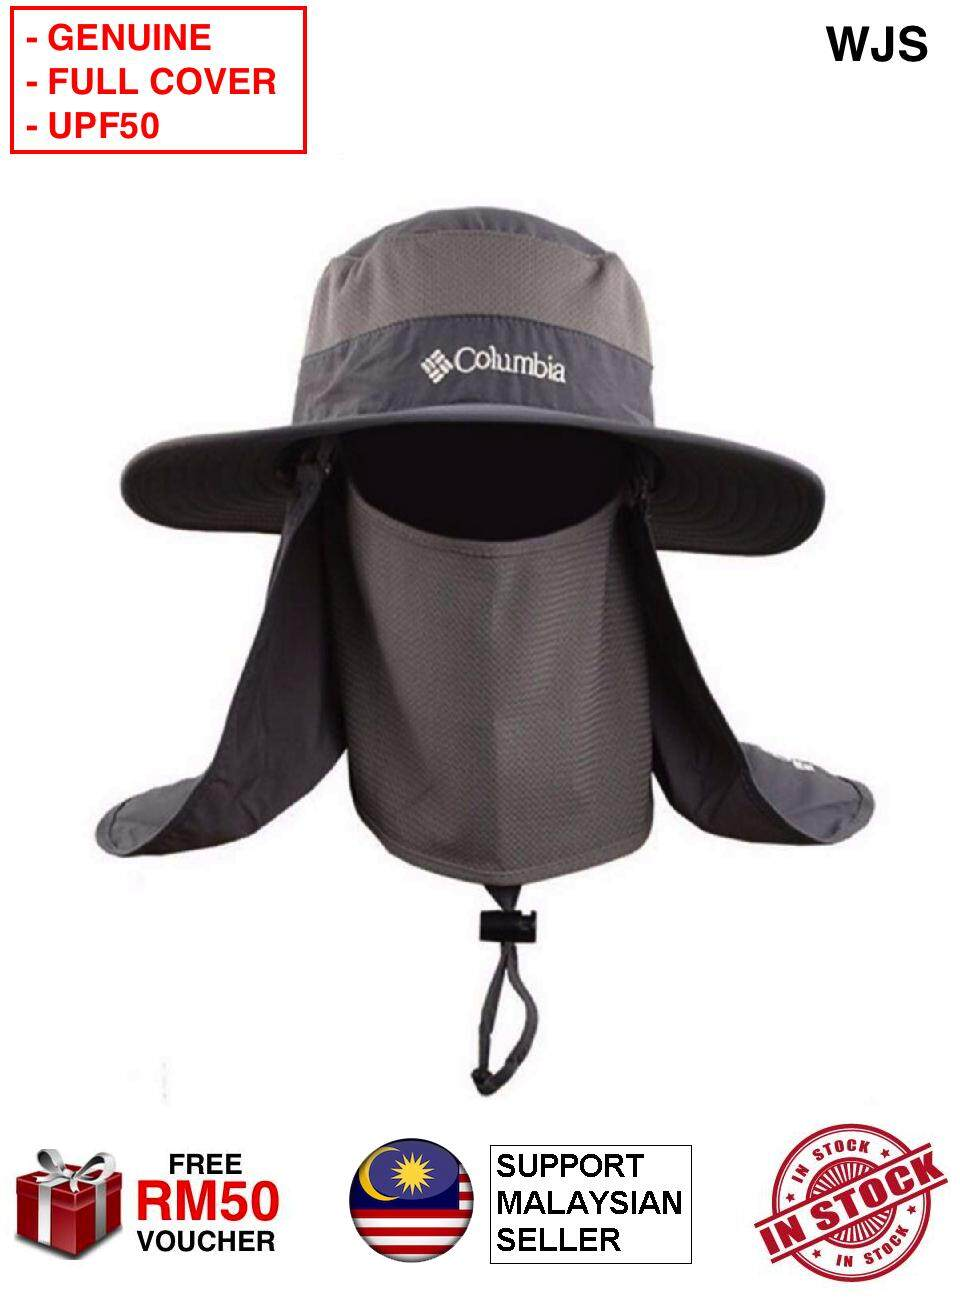 23e5df2e0573f (GENUINE) WJS Columbia Fisherman Hat Outdoor 360 Sunscreen Sun Screen Fisher  Man Hat UPF50